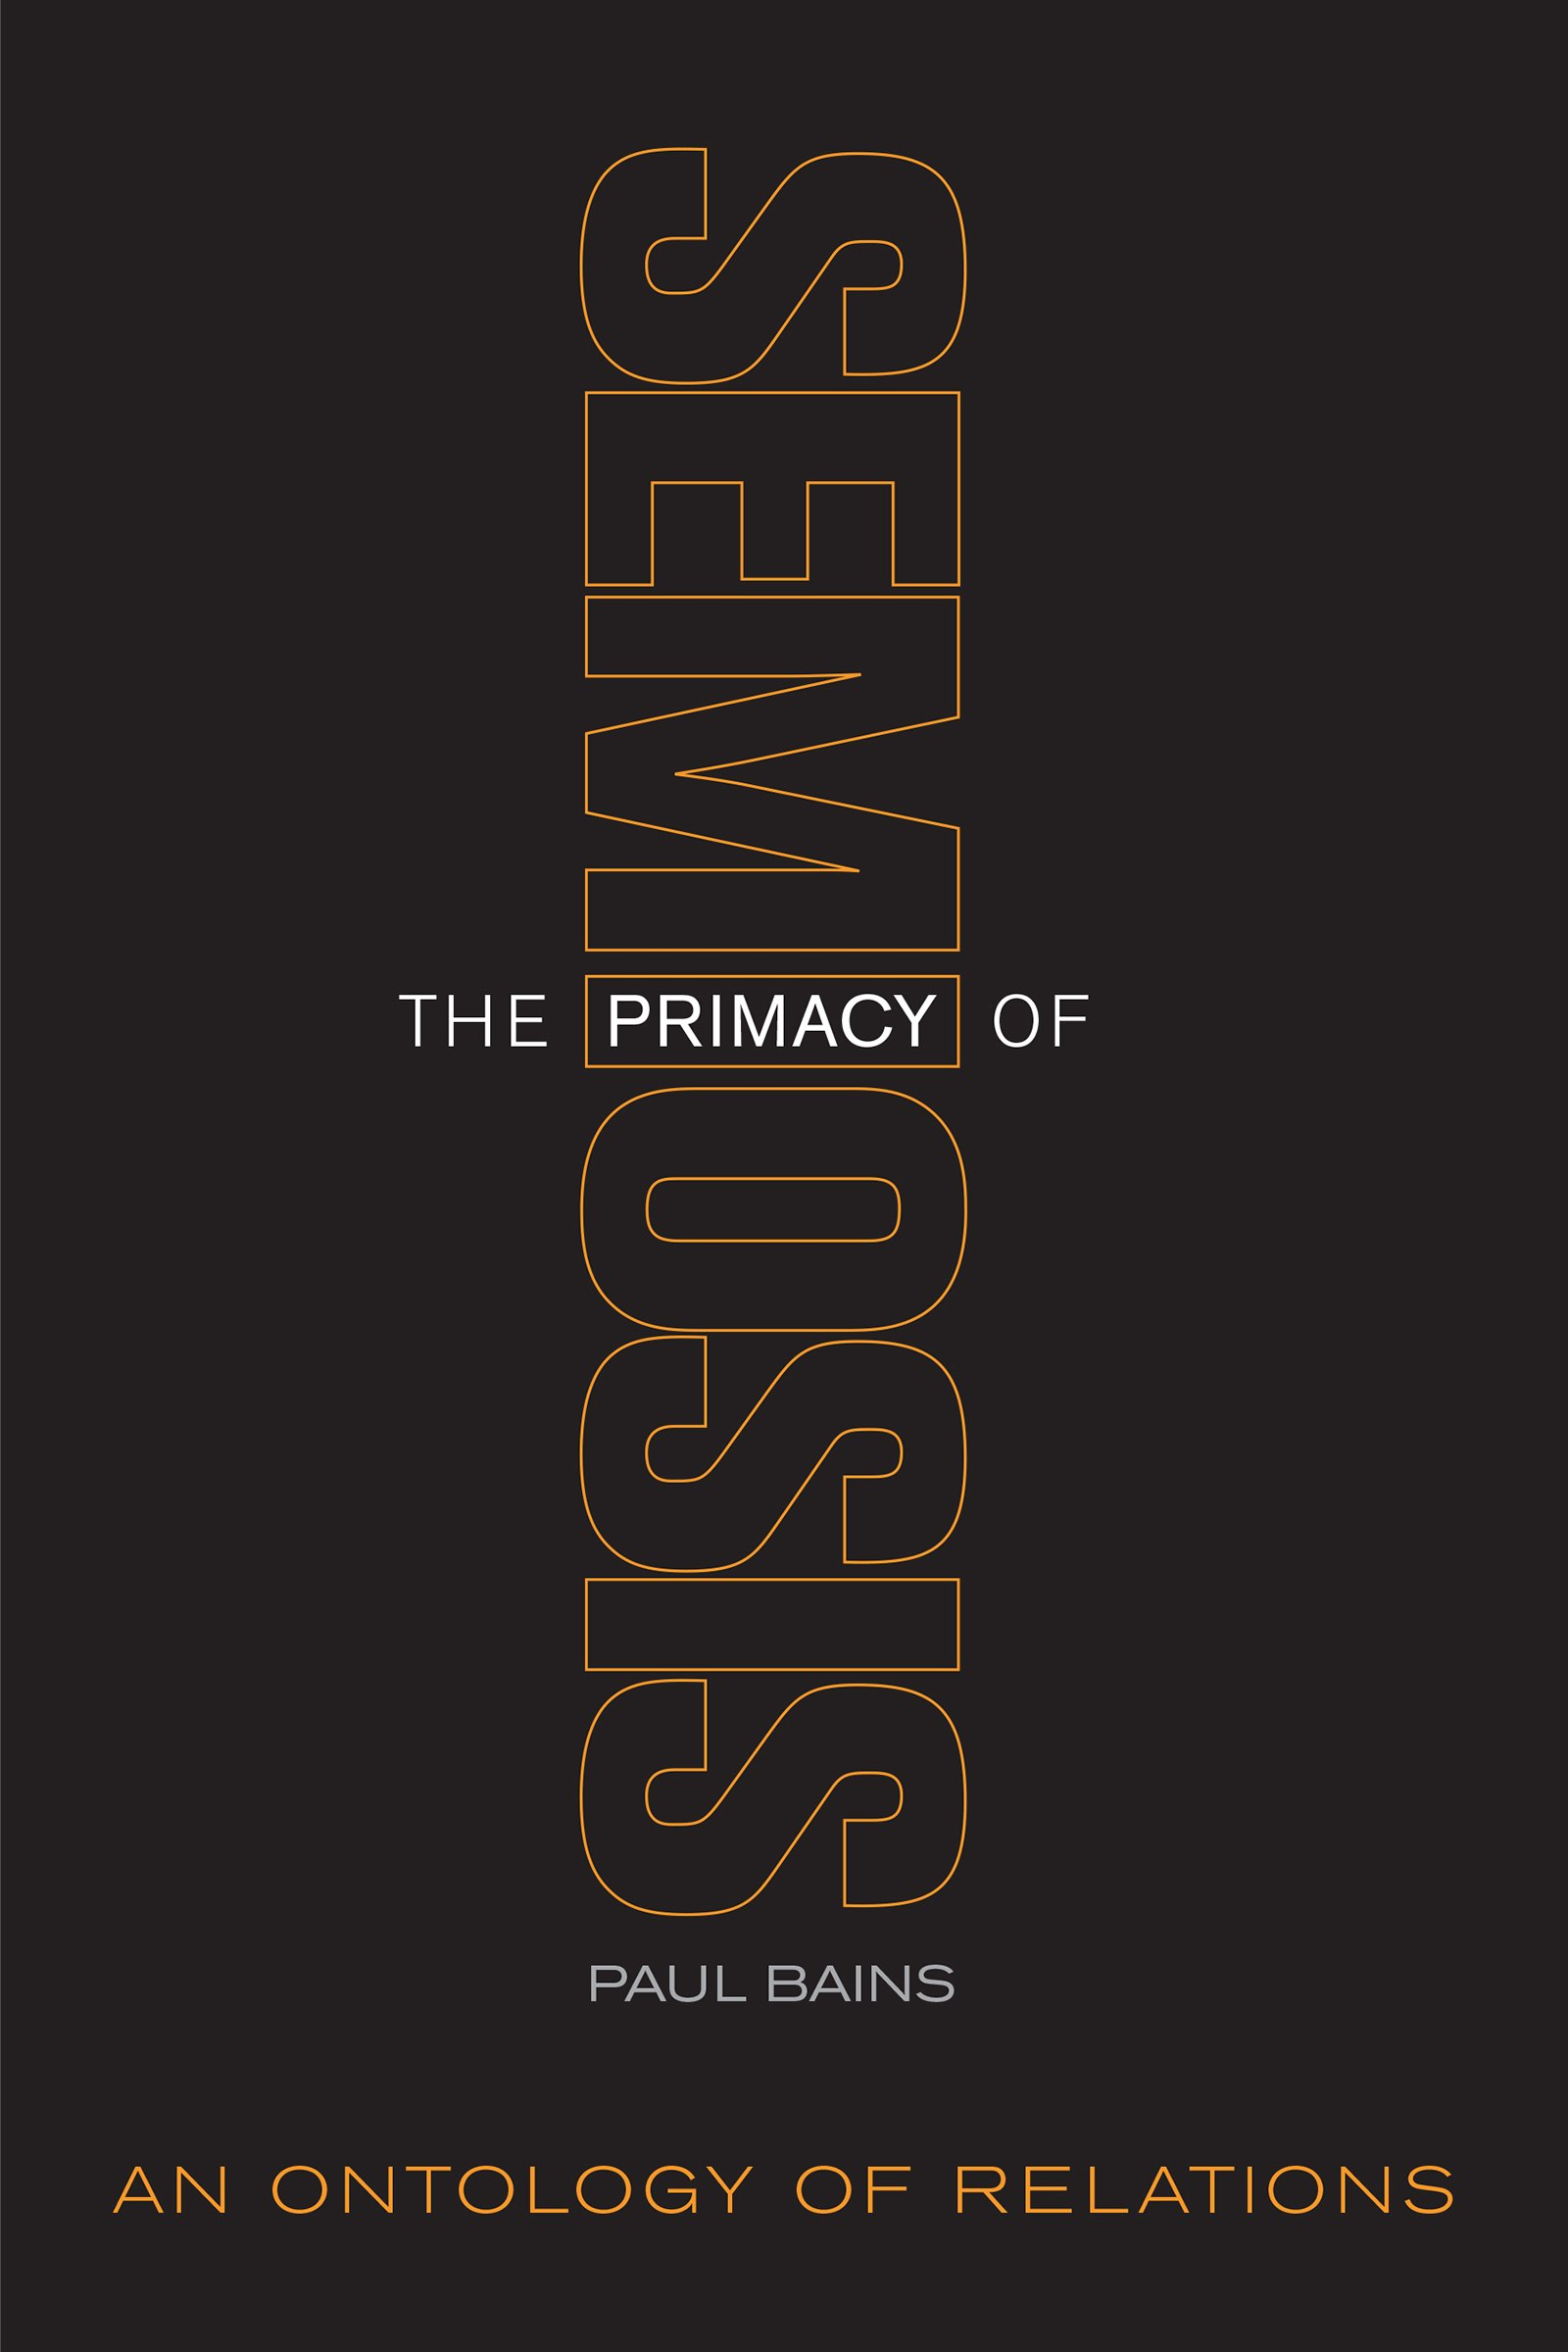 The Primacy of Semiosis: An Ontology of Relations